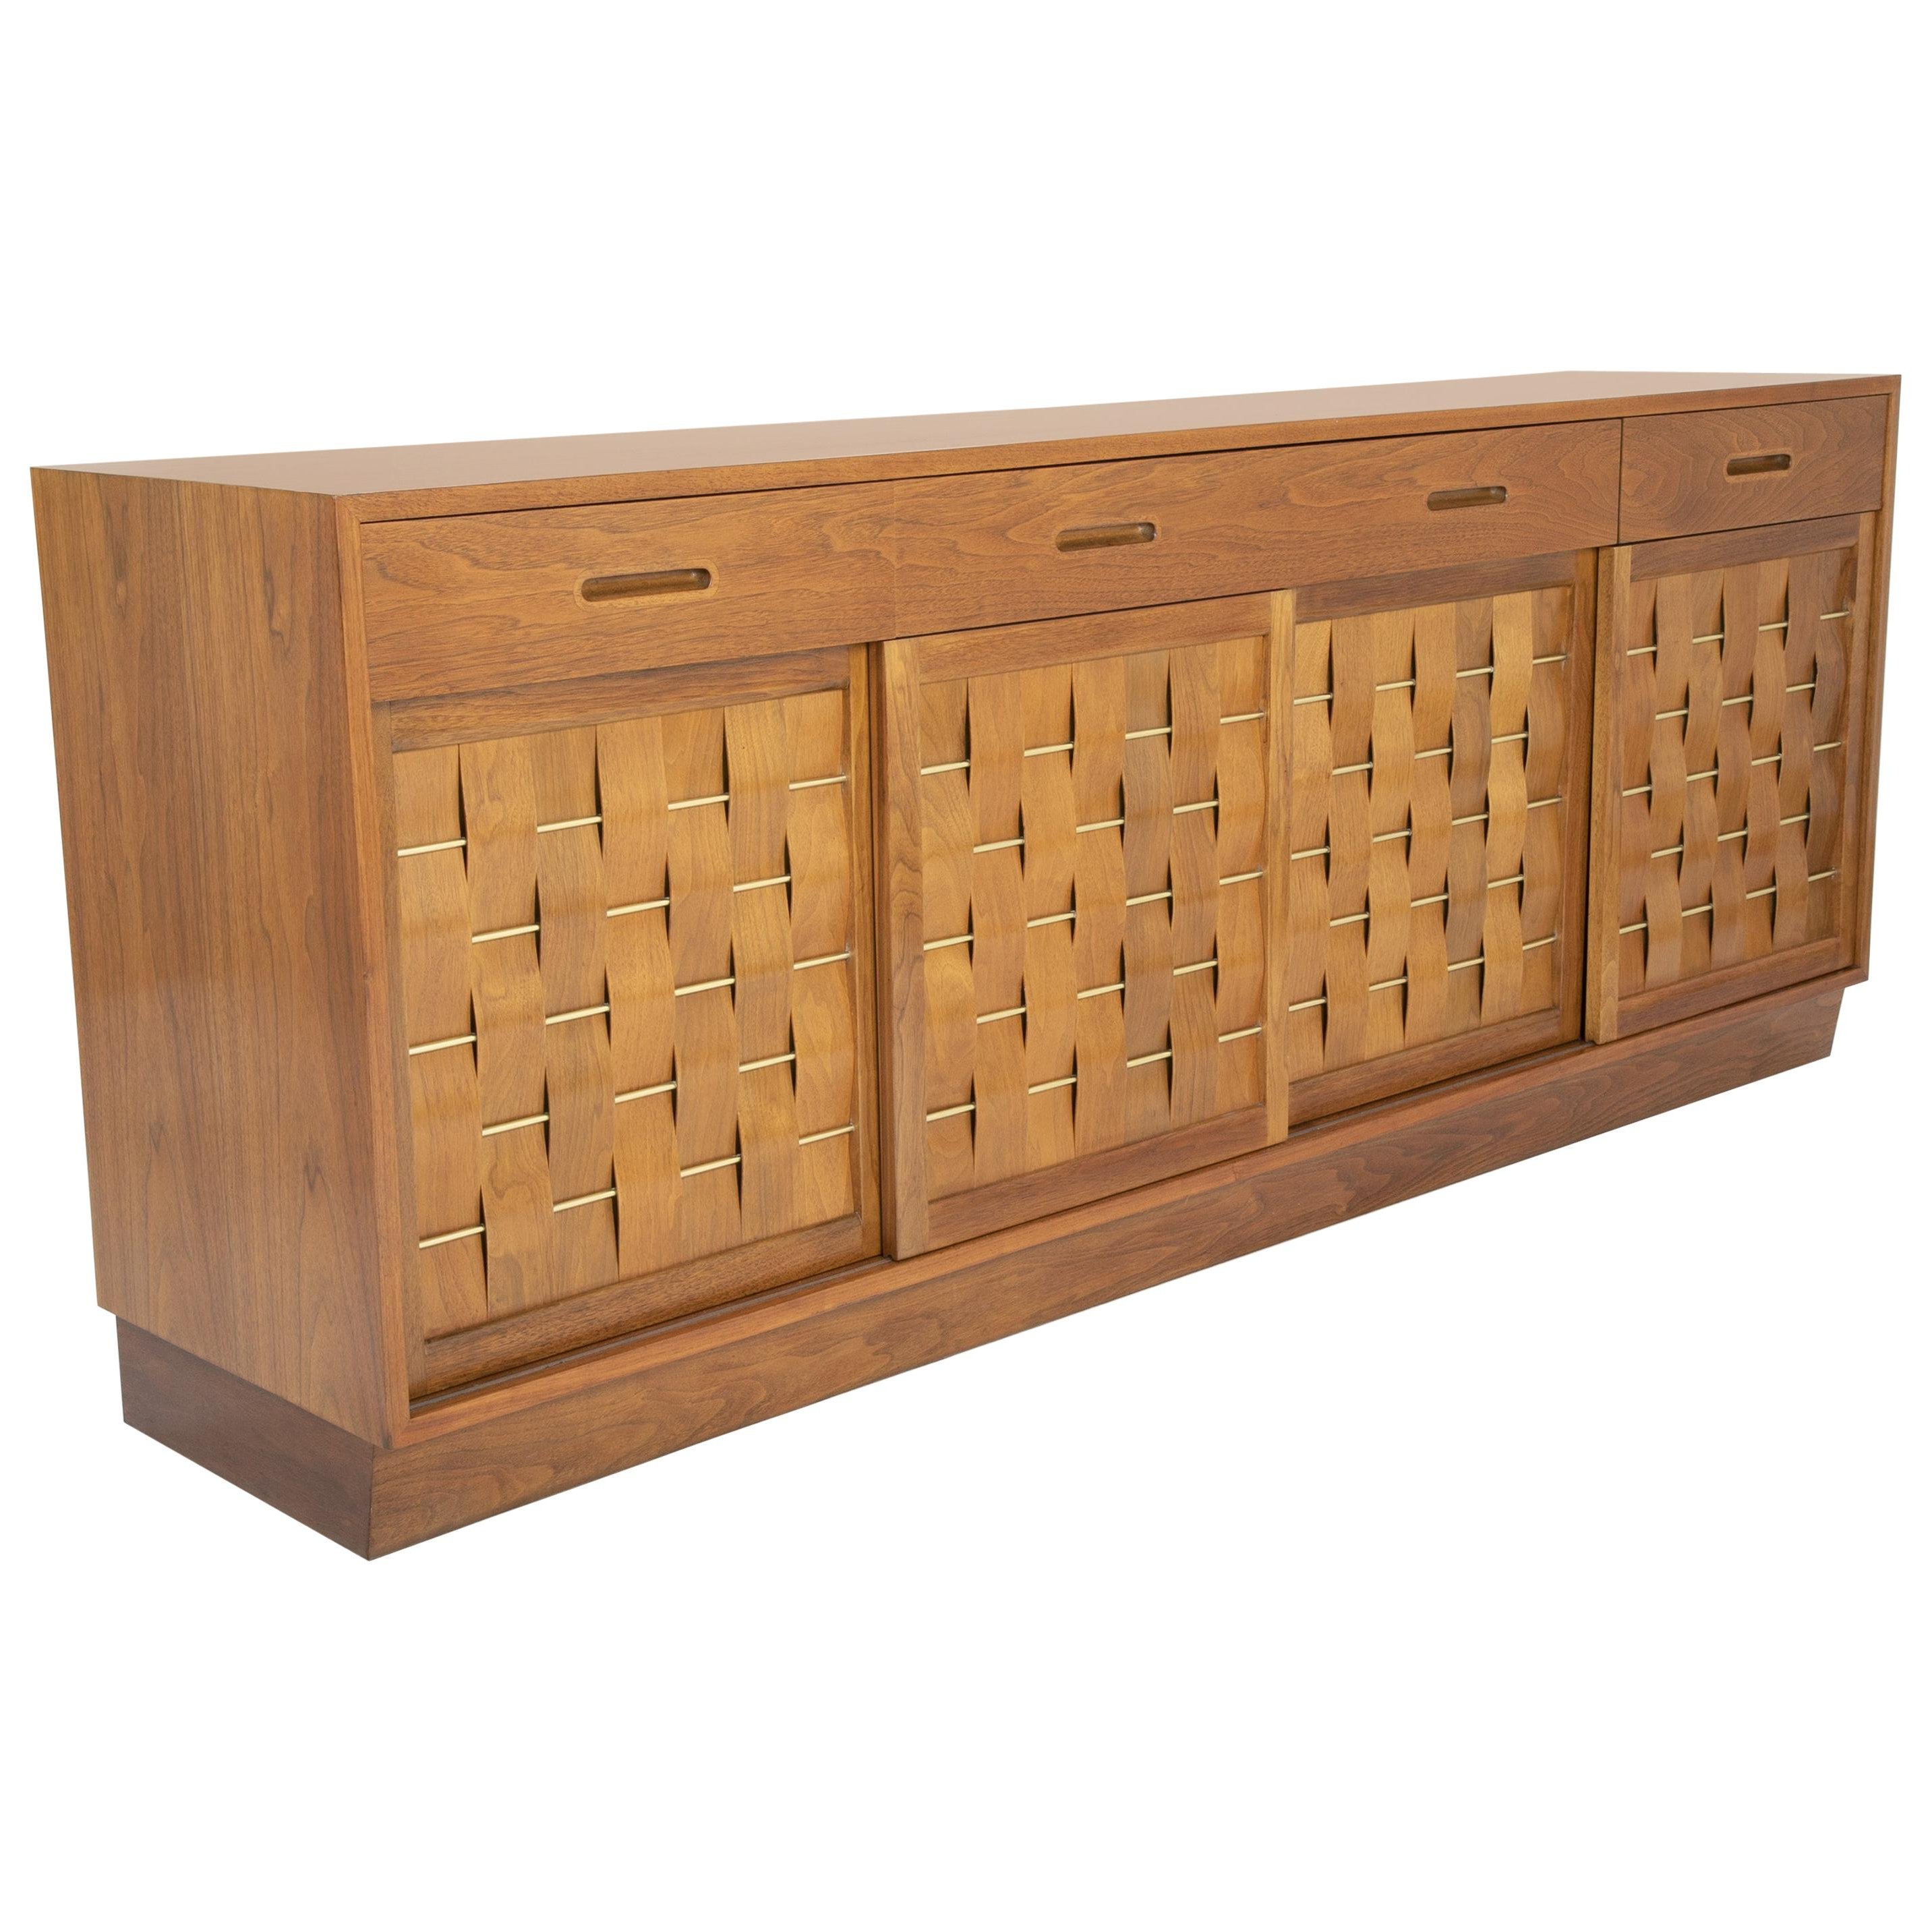 Preferred Edward Wormley Sideboards – 38 For Sale At 1Stdibs Within Gertrude Sideboards (View 6 of 20)